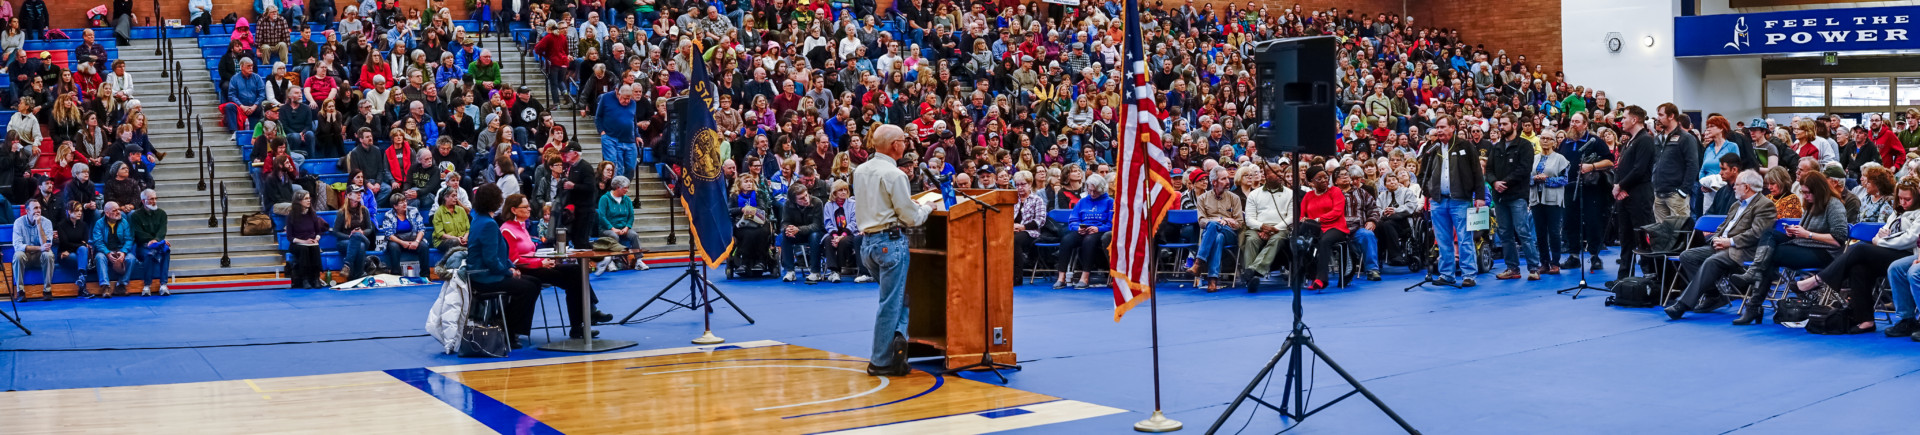 February 25, 2017 at Peter DeFazio's town hall